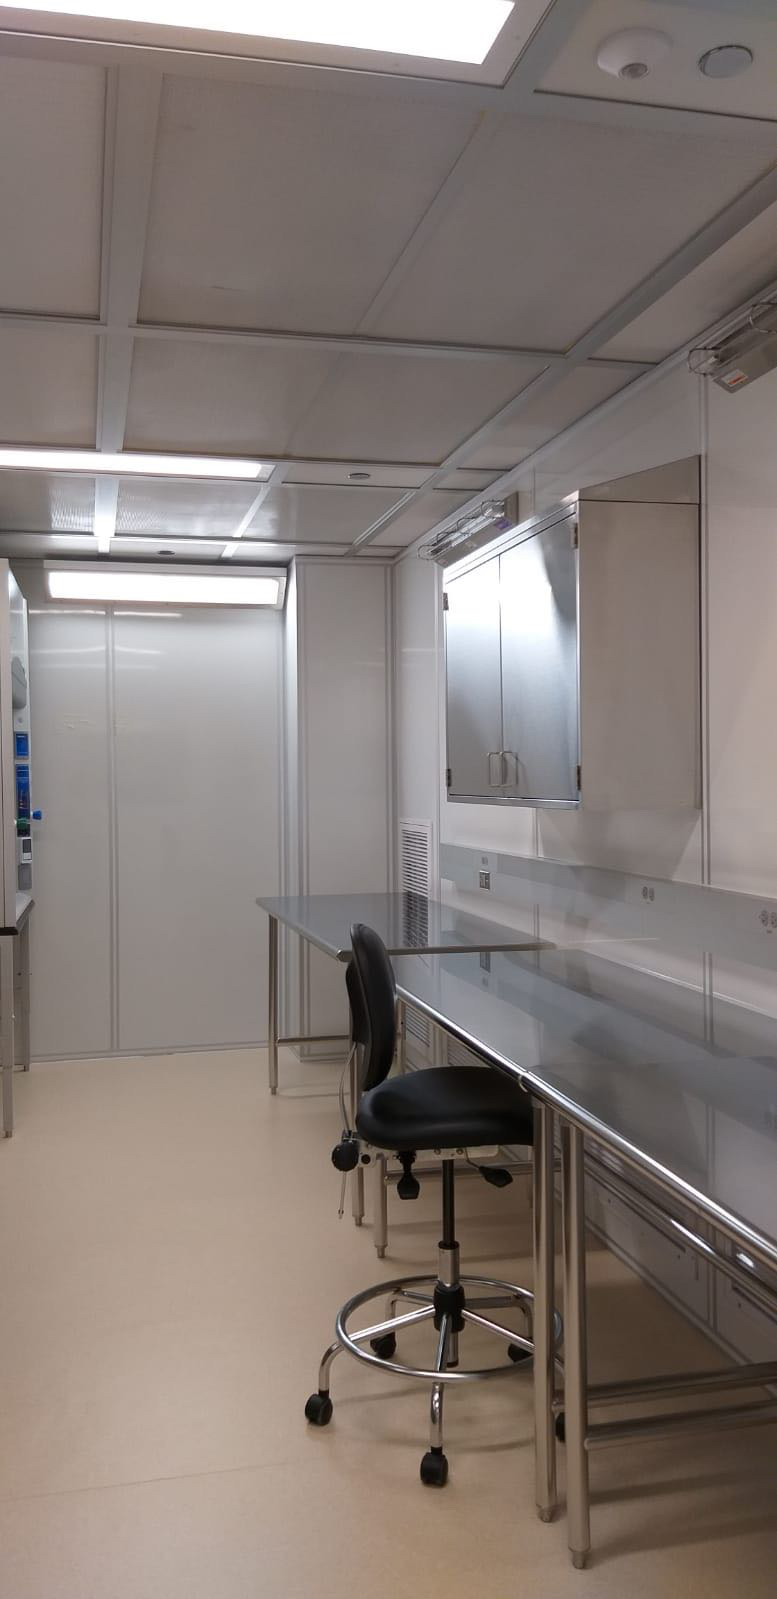 A glimpse of our new aDNA lab